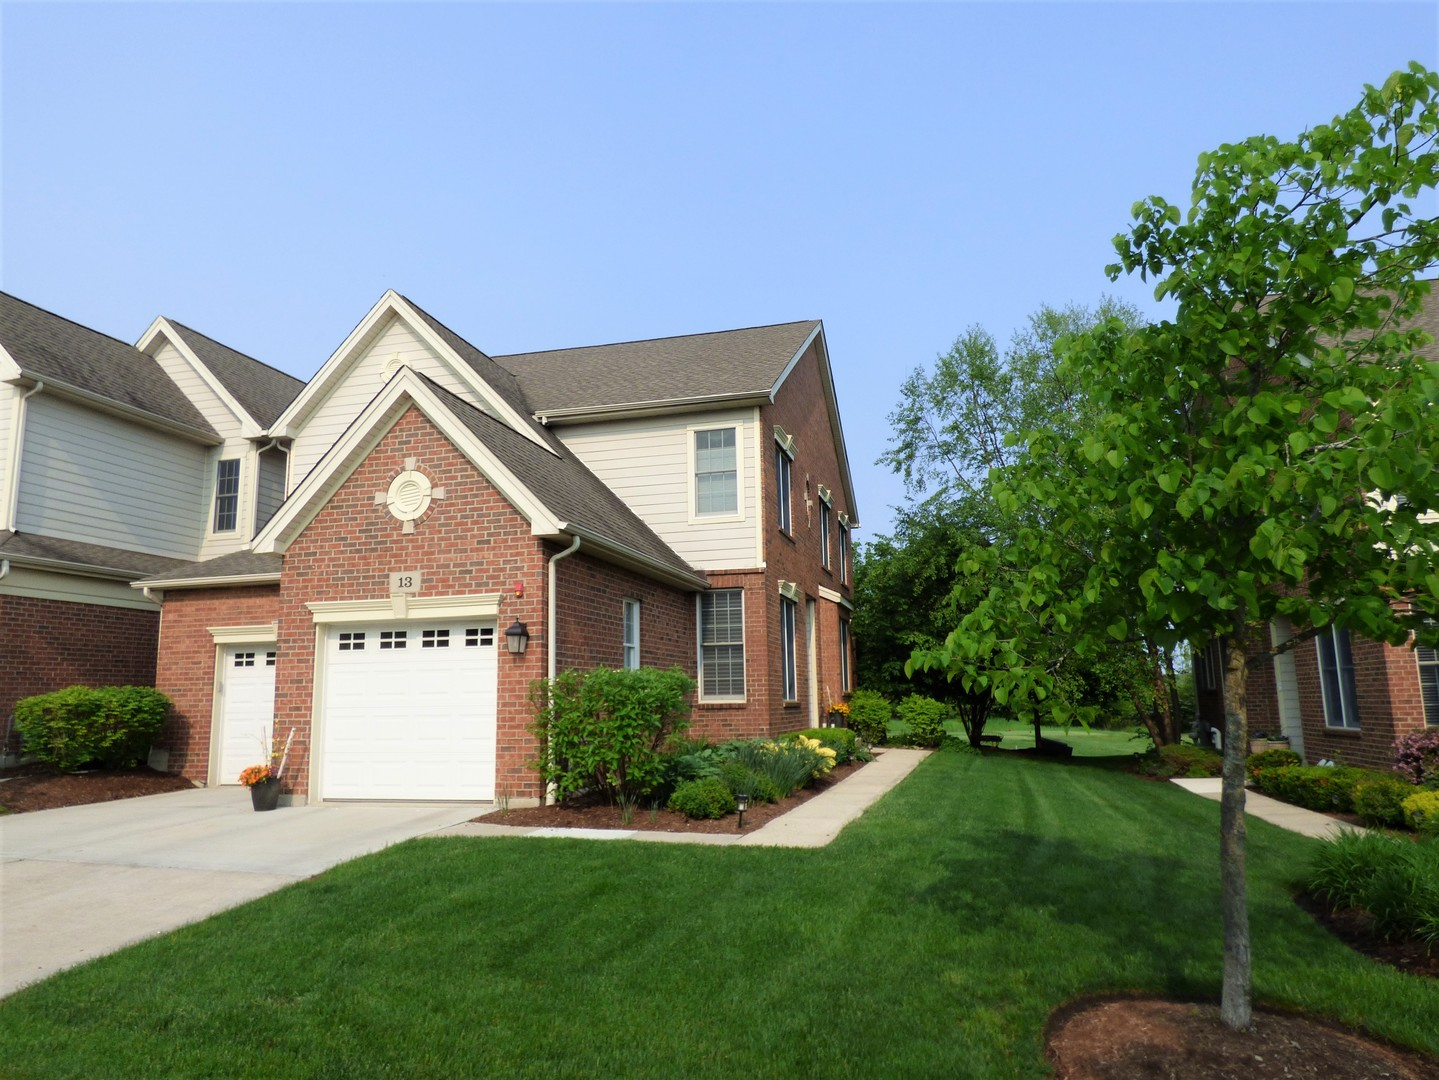 13 Red Tail Drive, Hawthorn Woods, Illinois 60047